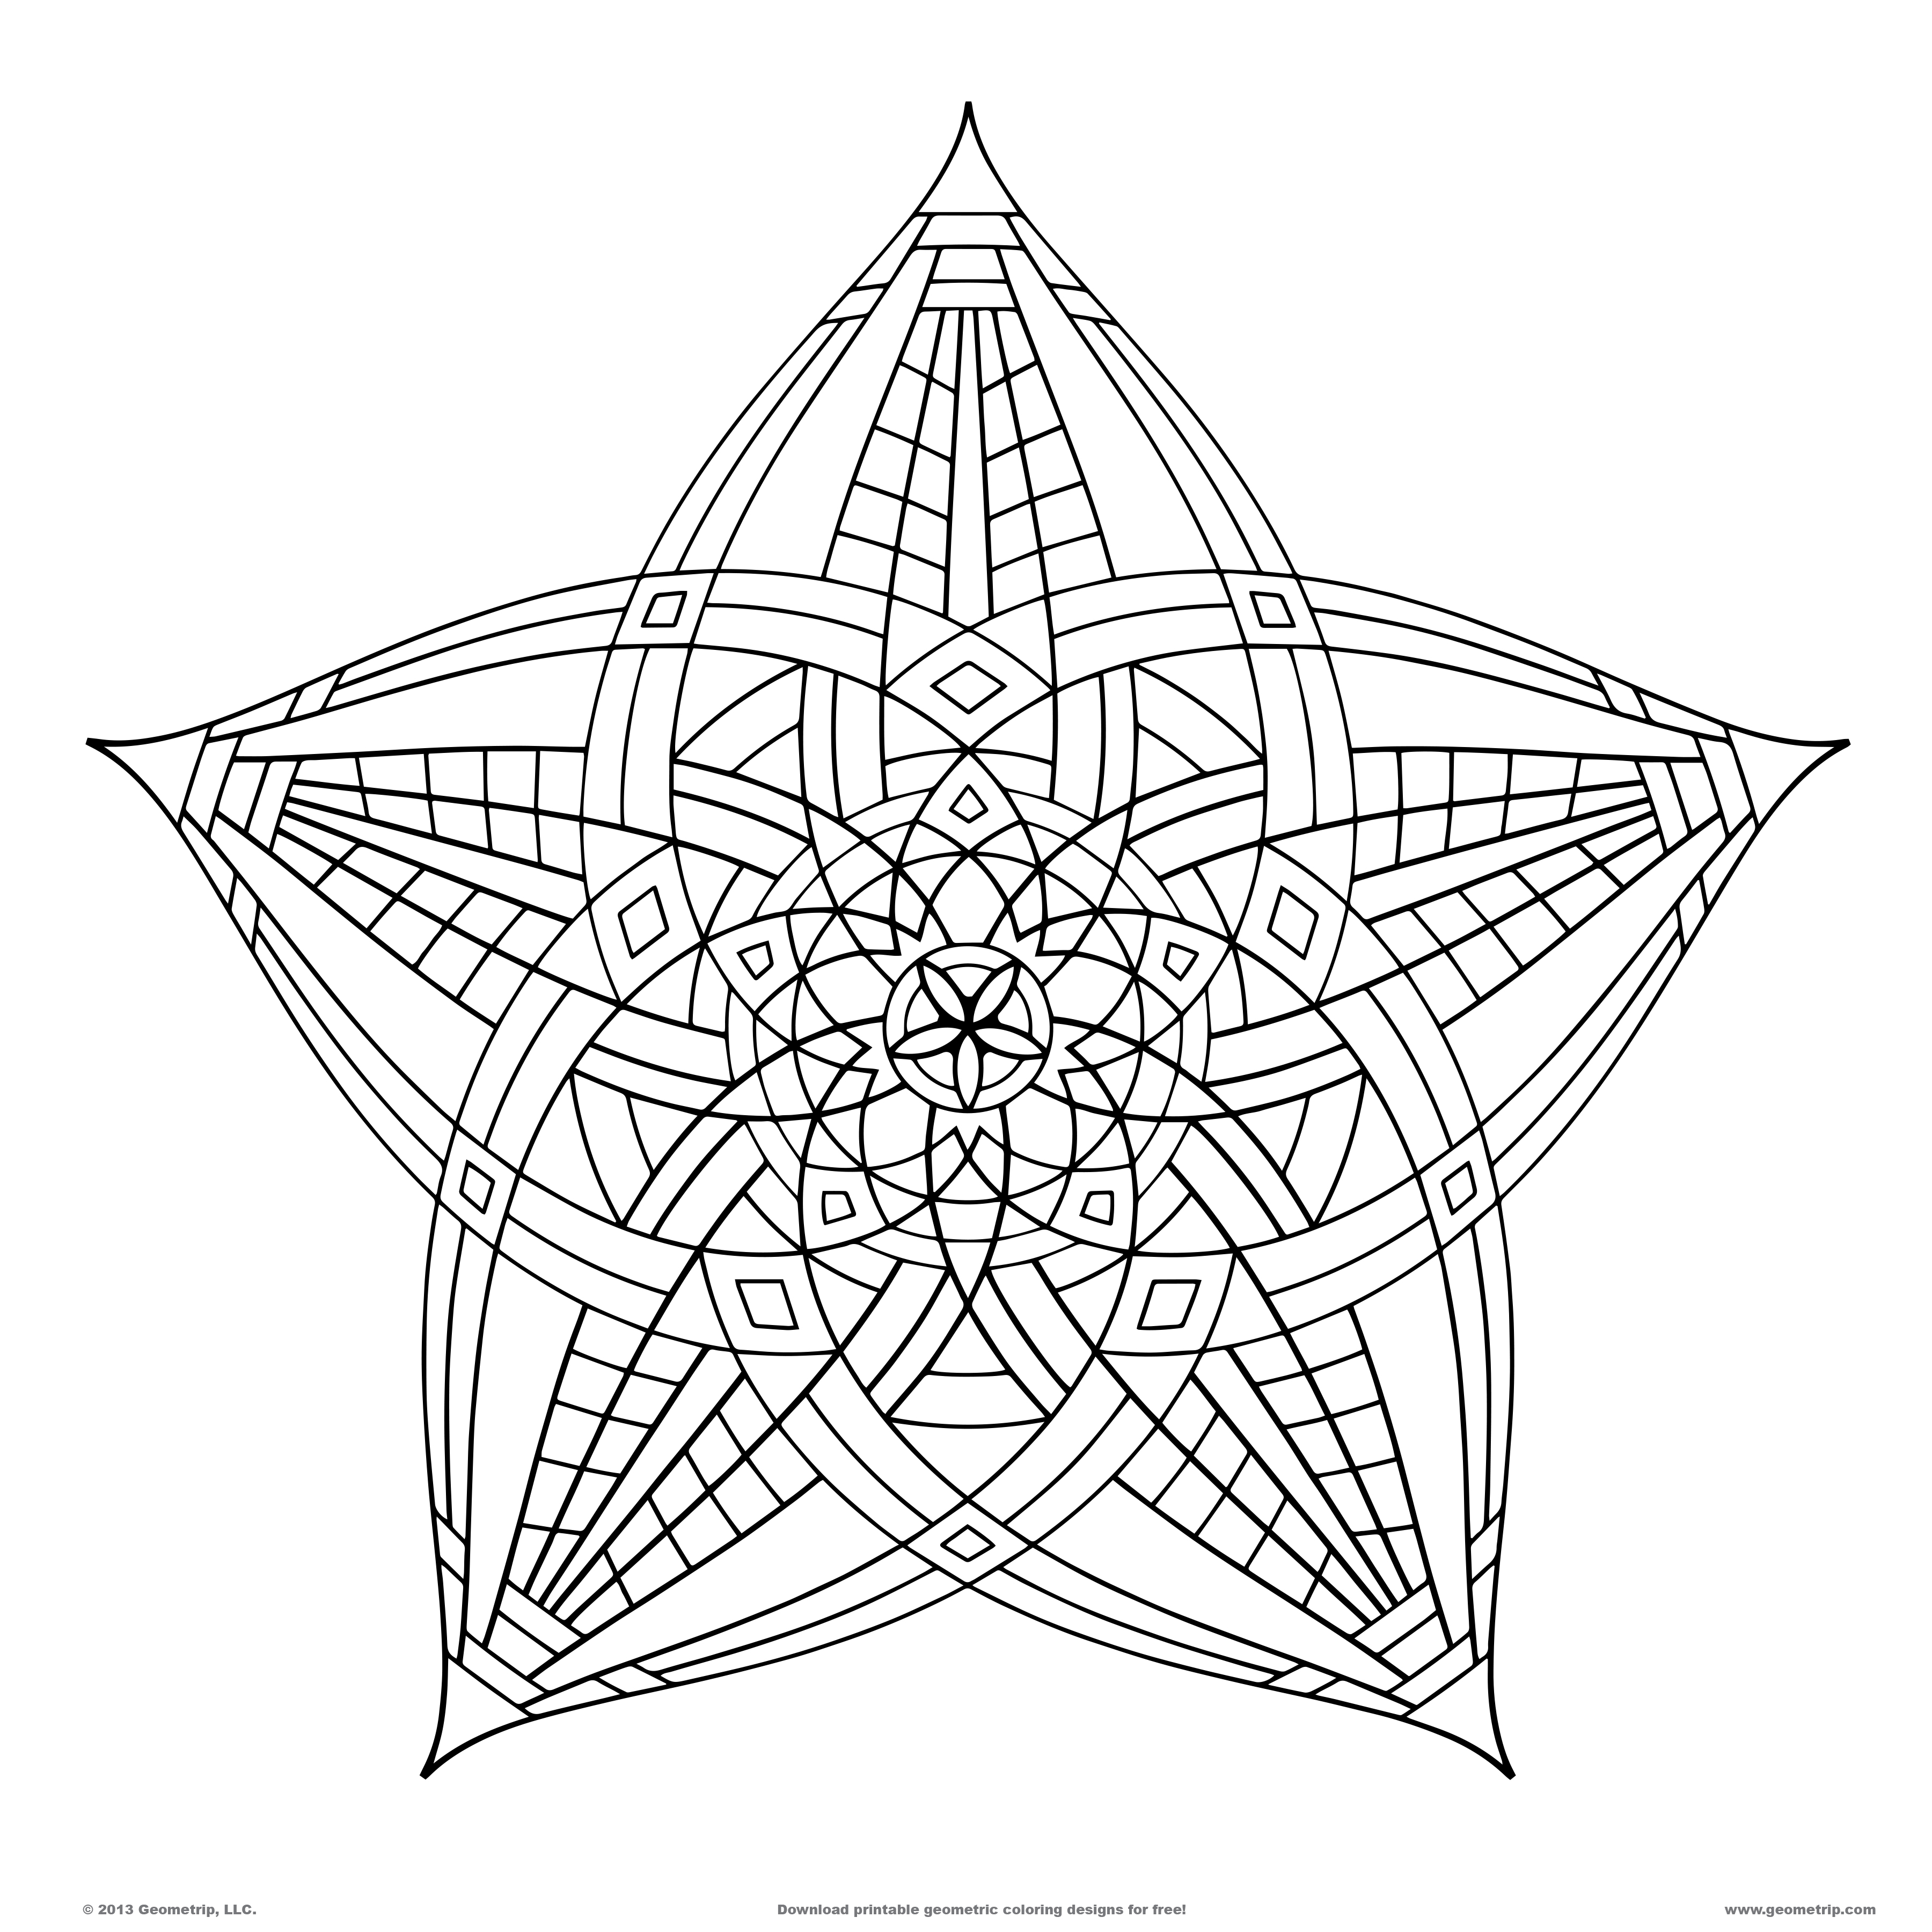 cool designs to color in cool geometric designs coloring page get coloring pages in color cool to designs